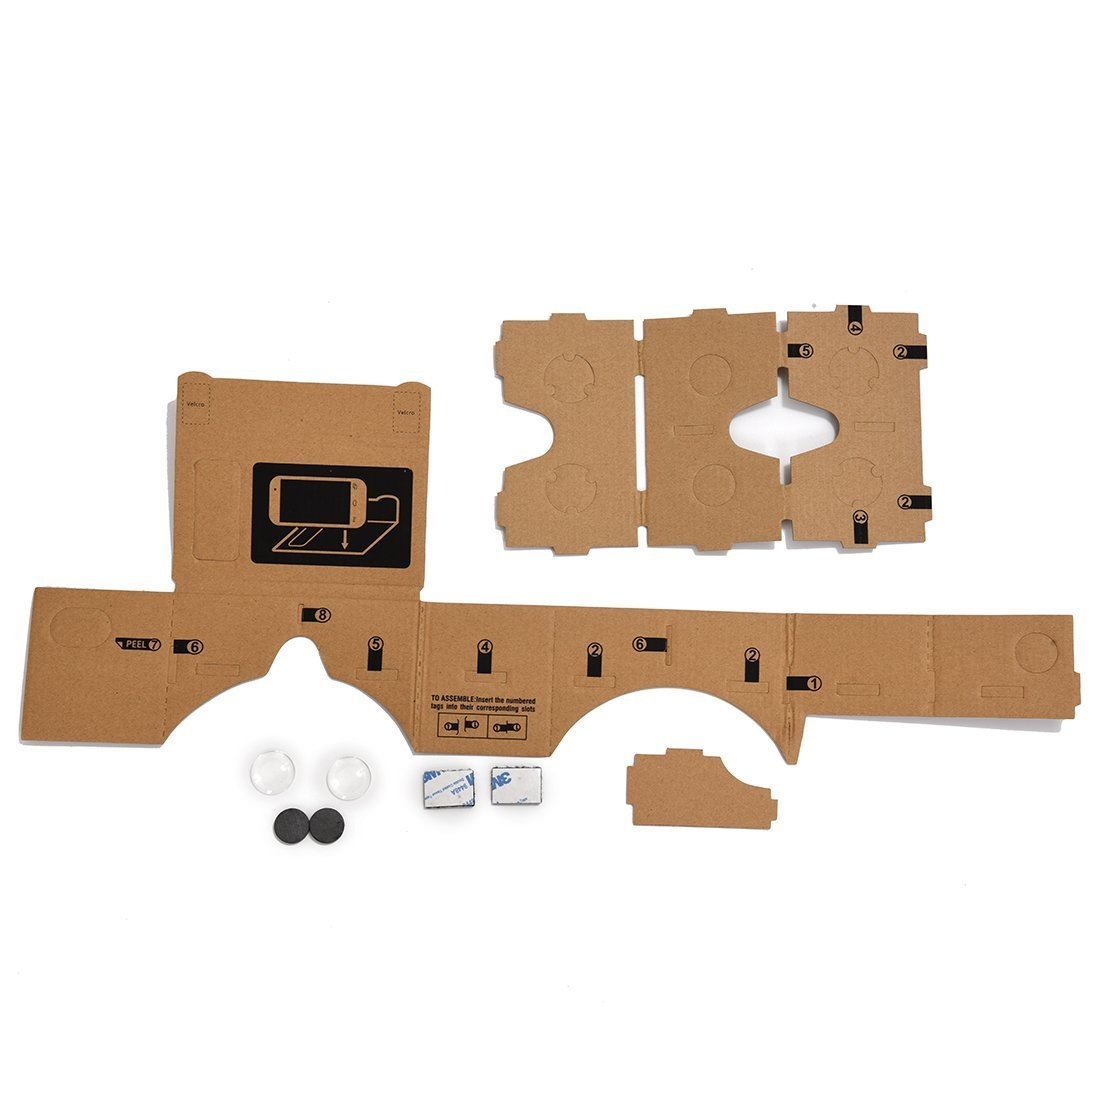 3D Virtual Reality Glasses - TOOGOO (R) Mobile phone cardboard quality 3D Virtual Reality Glasses